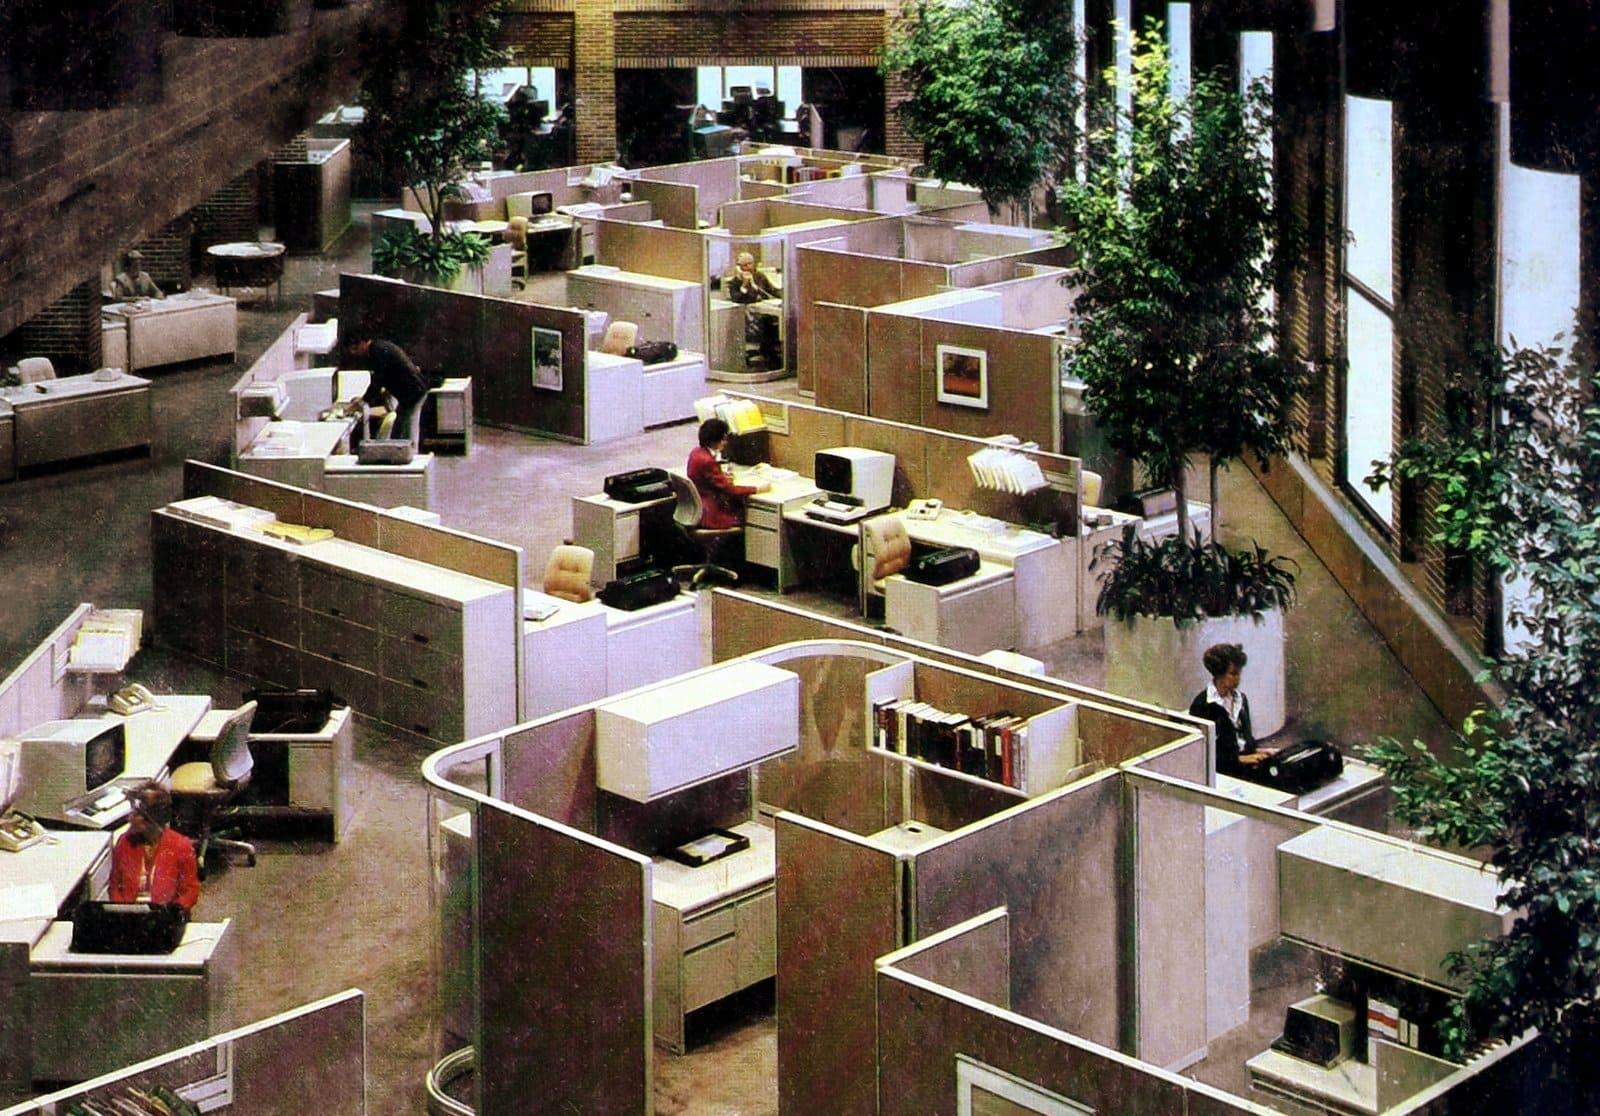 Vintage old office cubicles from the 1970s - Business and jobs